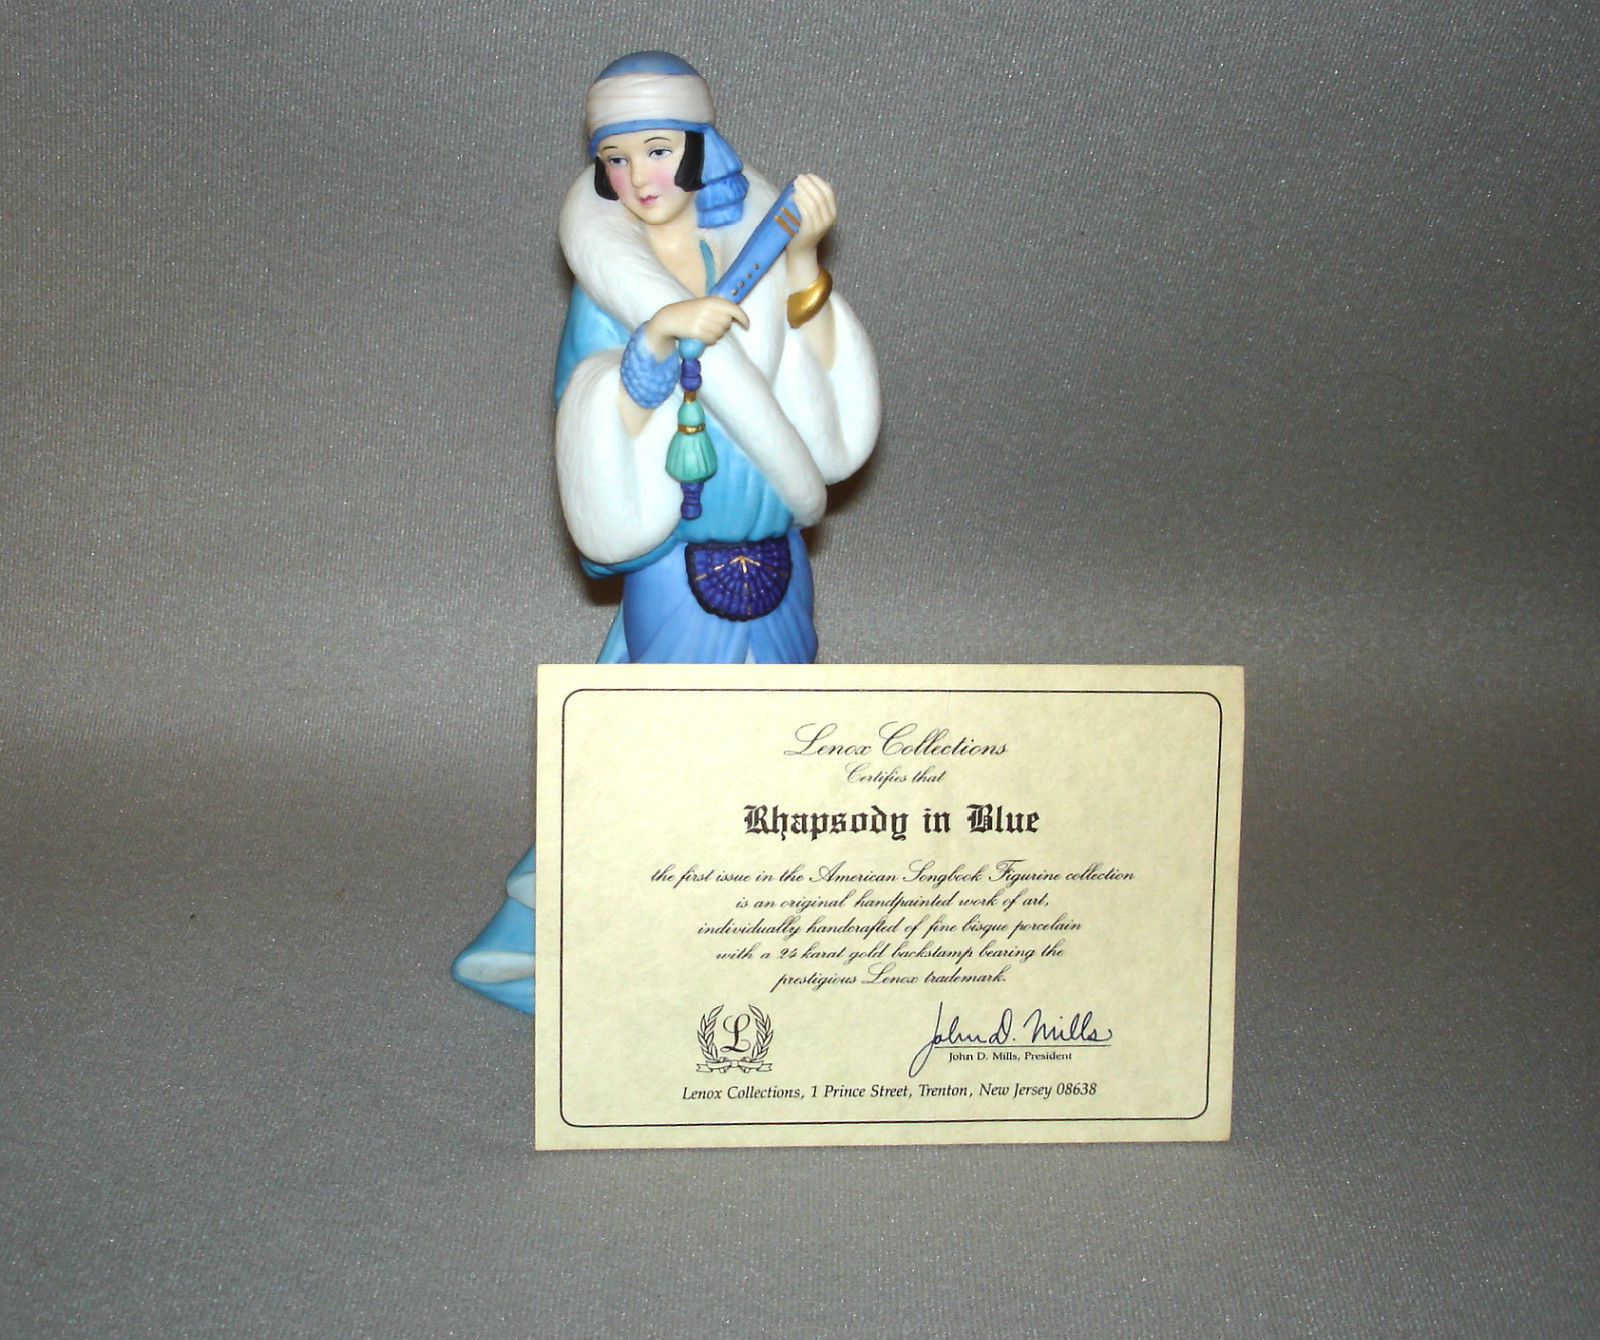 LENOX -  Rhapsody in Blue -  American Songbook Figurine Collection 1st Issue